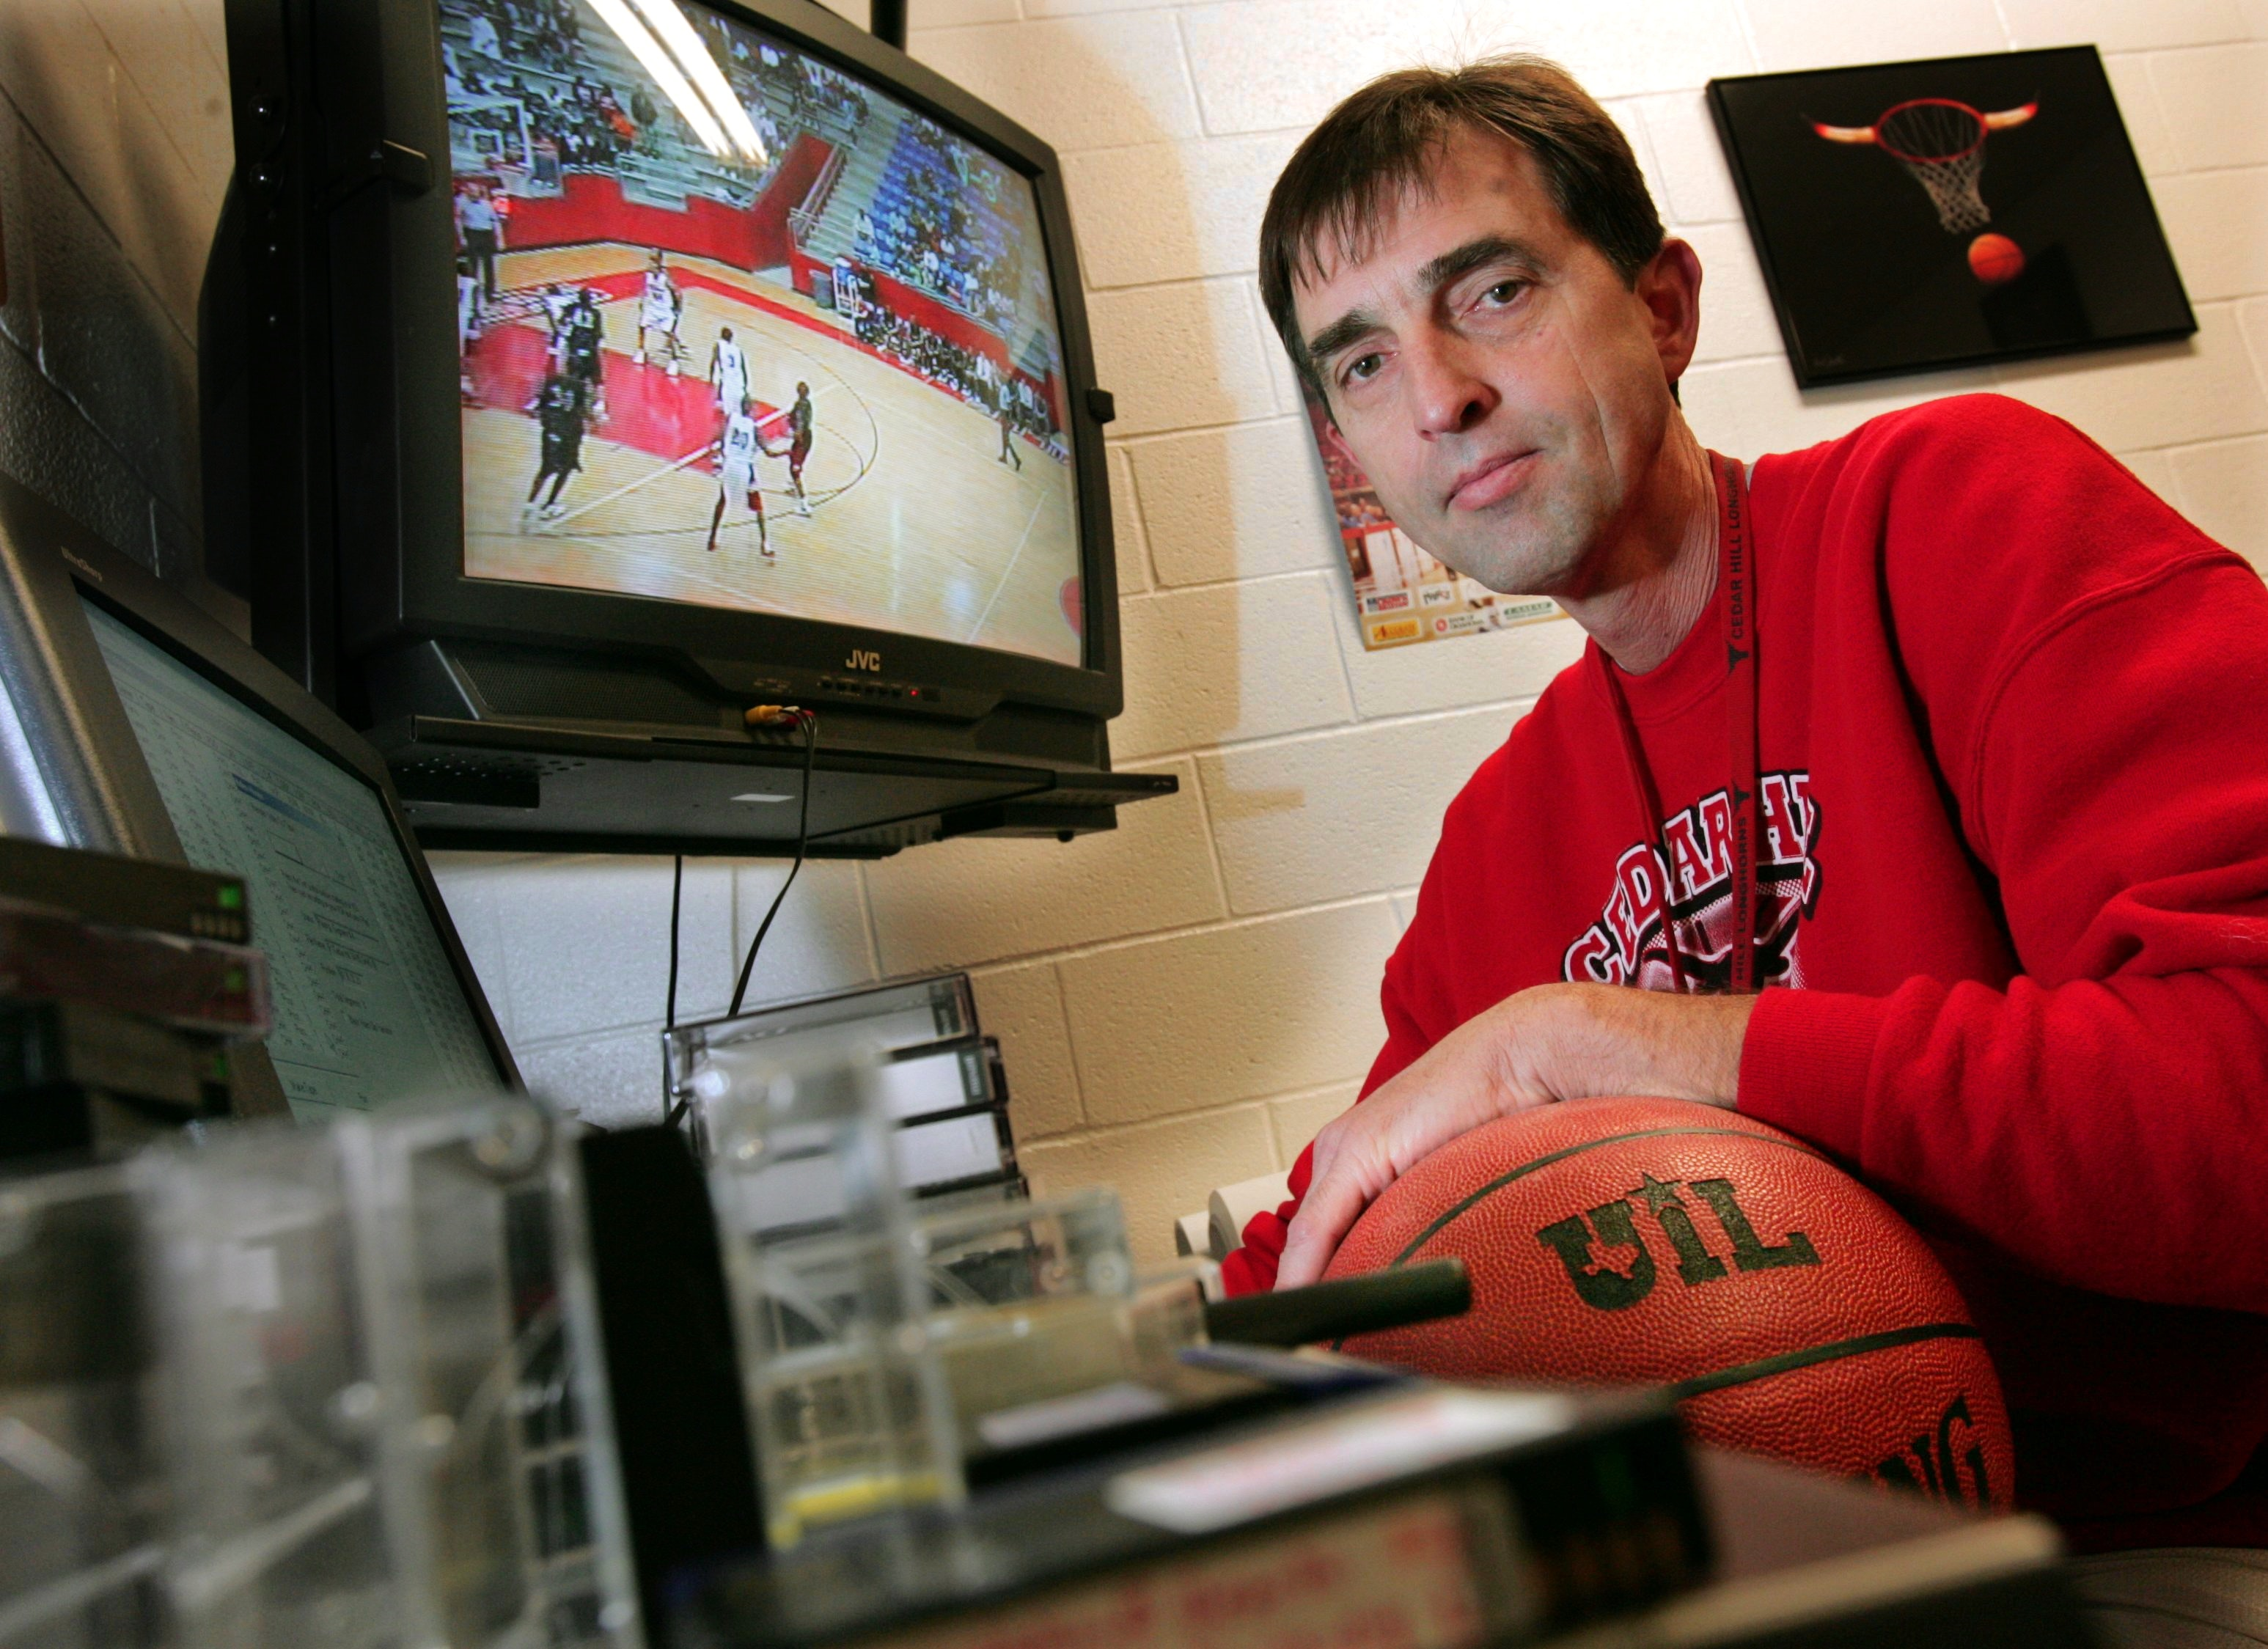 Former Cedar Hill Boys Basketball Coach David Milson 53 Dies